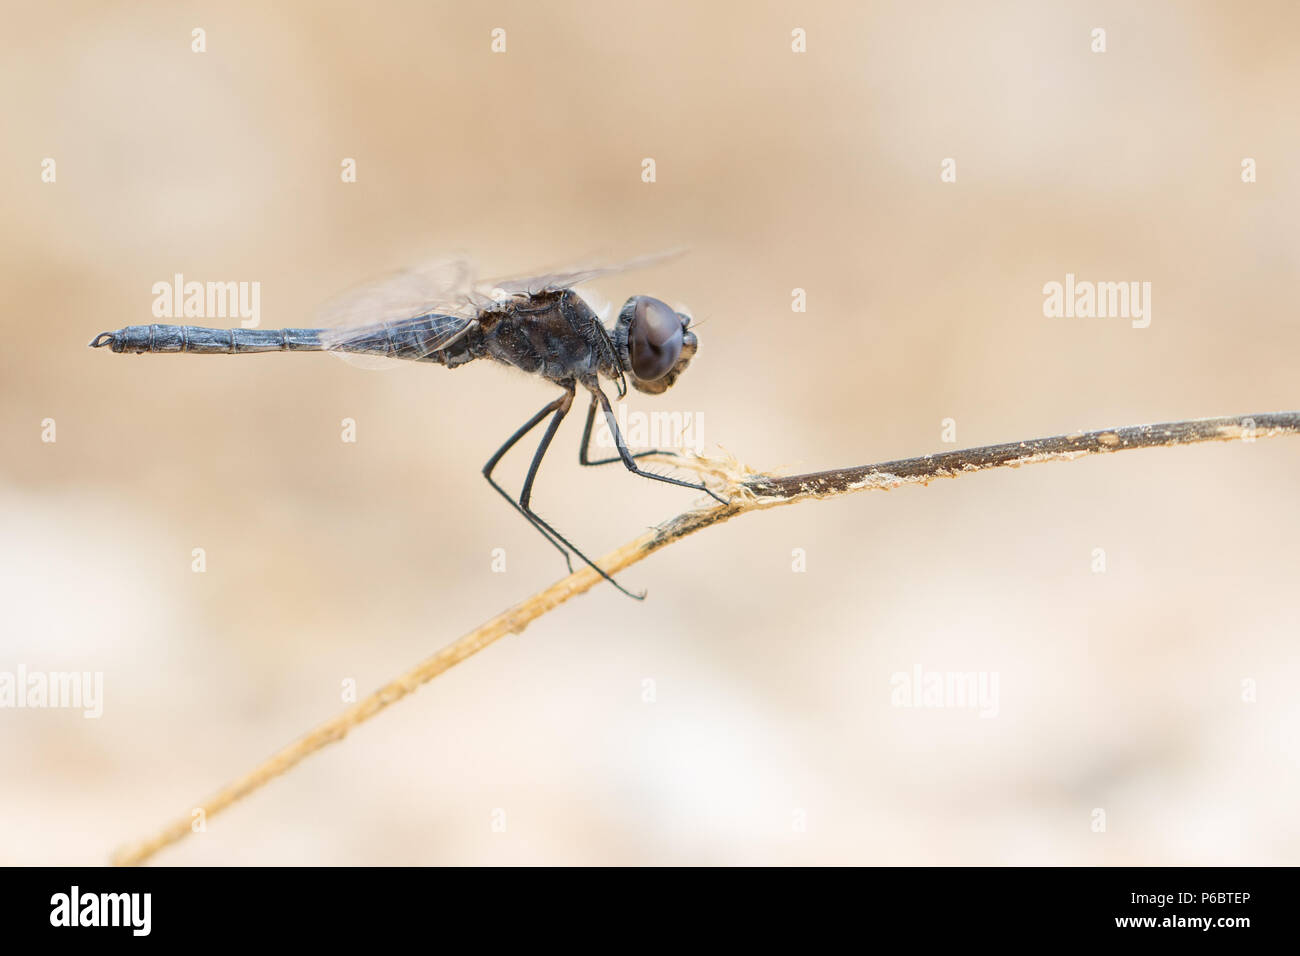 Dragonfly Selysiothemis nigra male resting on a plant in Catalonia, Spain - Stock Image